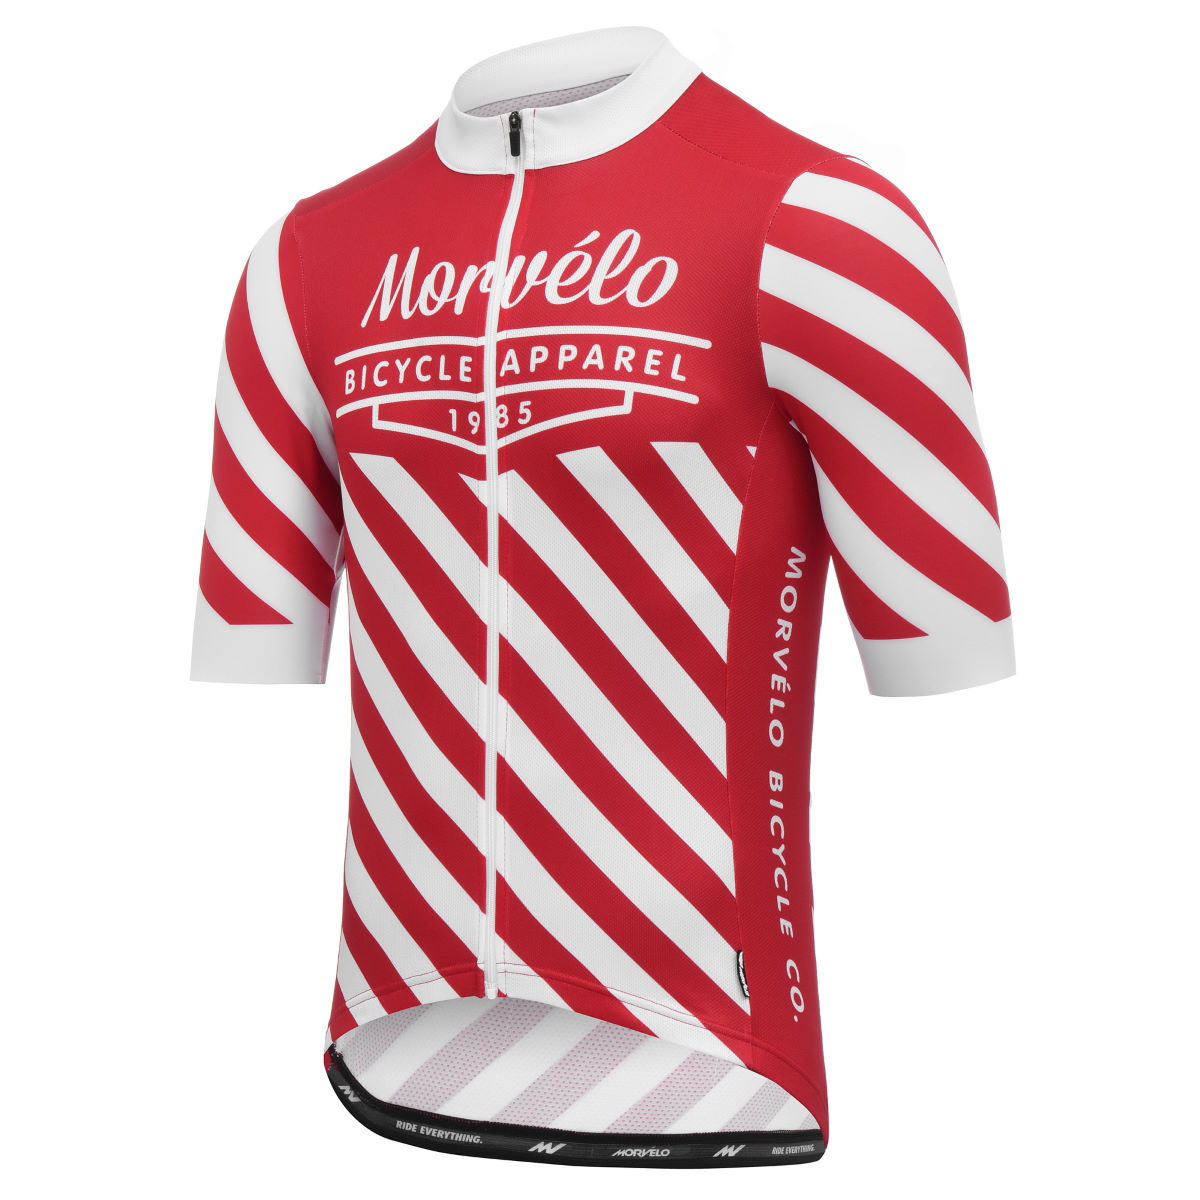 Maillot Morvelo 10 Year Celebration 85 - S Rouge/Blanc Maillots